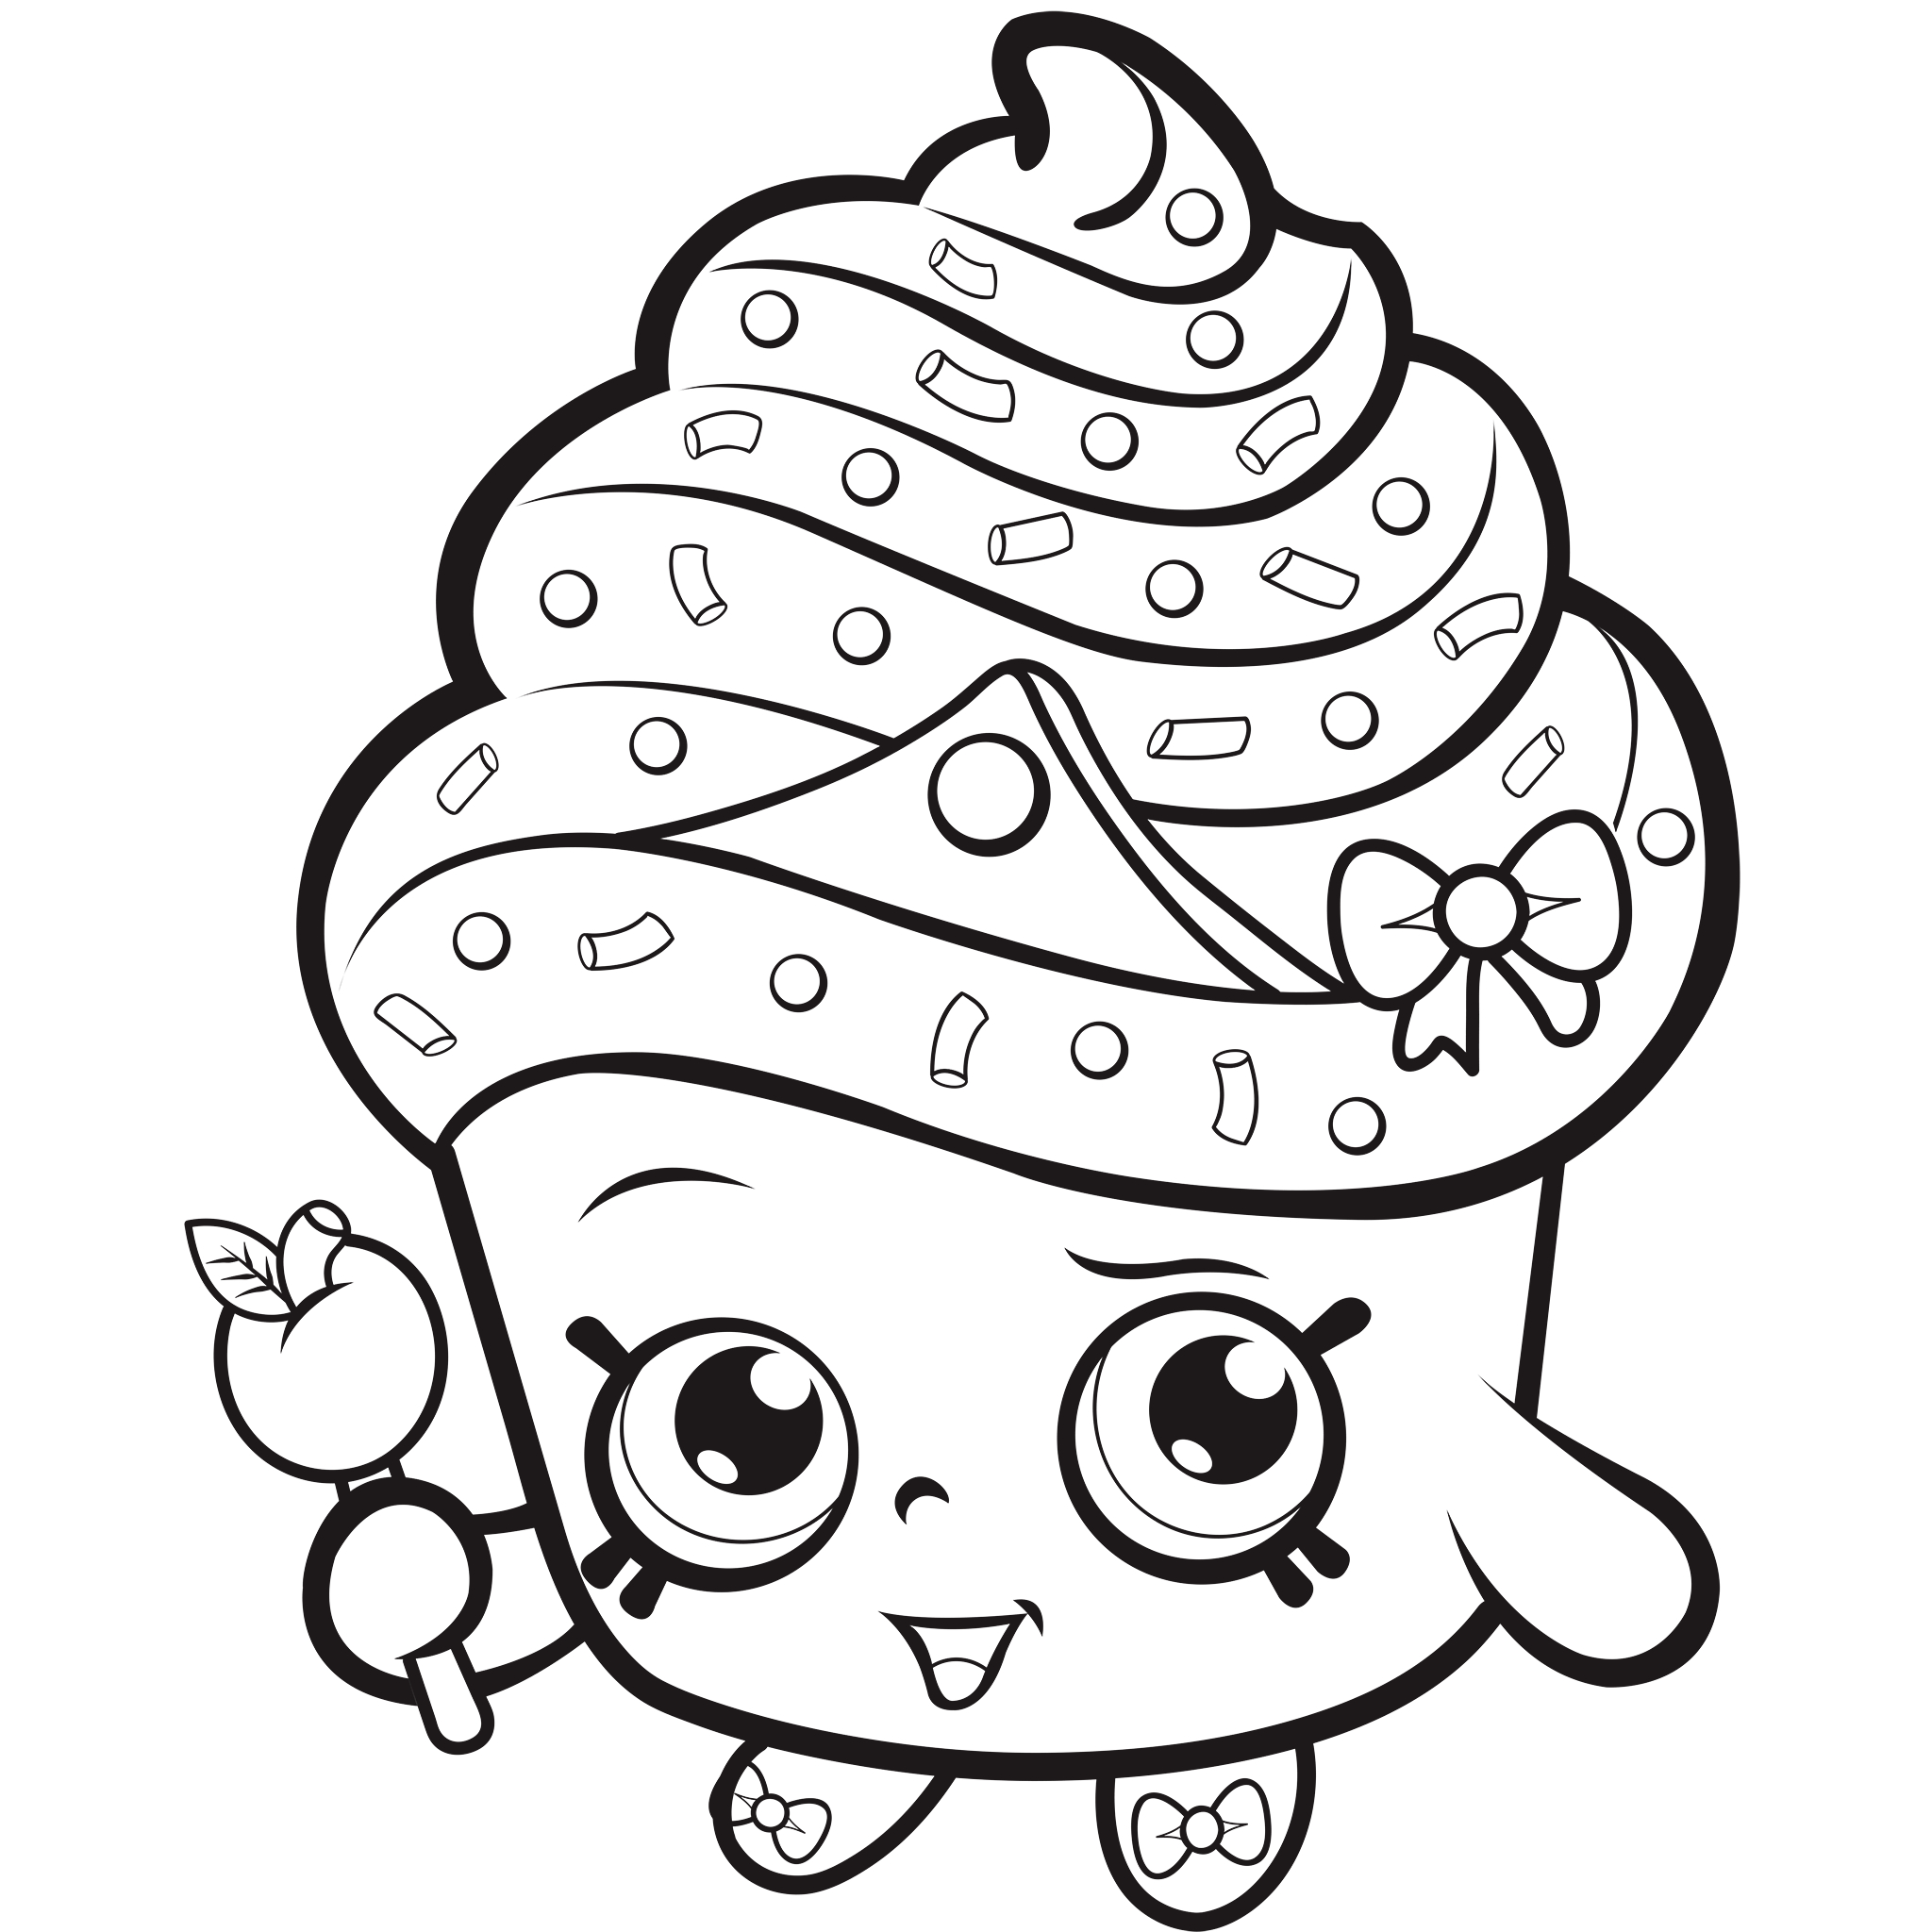 Kids Color Pages Shopkins Coloring Pages Best Coloring Pages For Kids